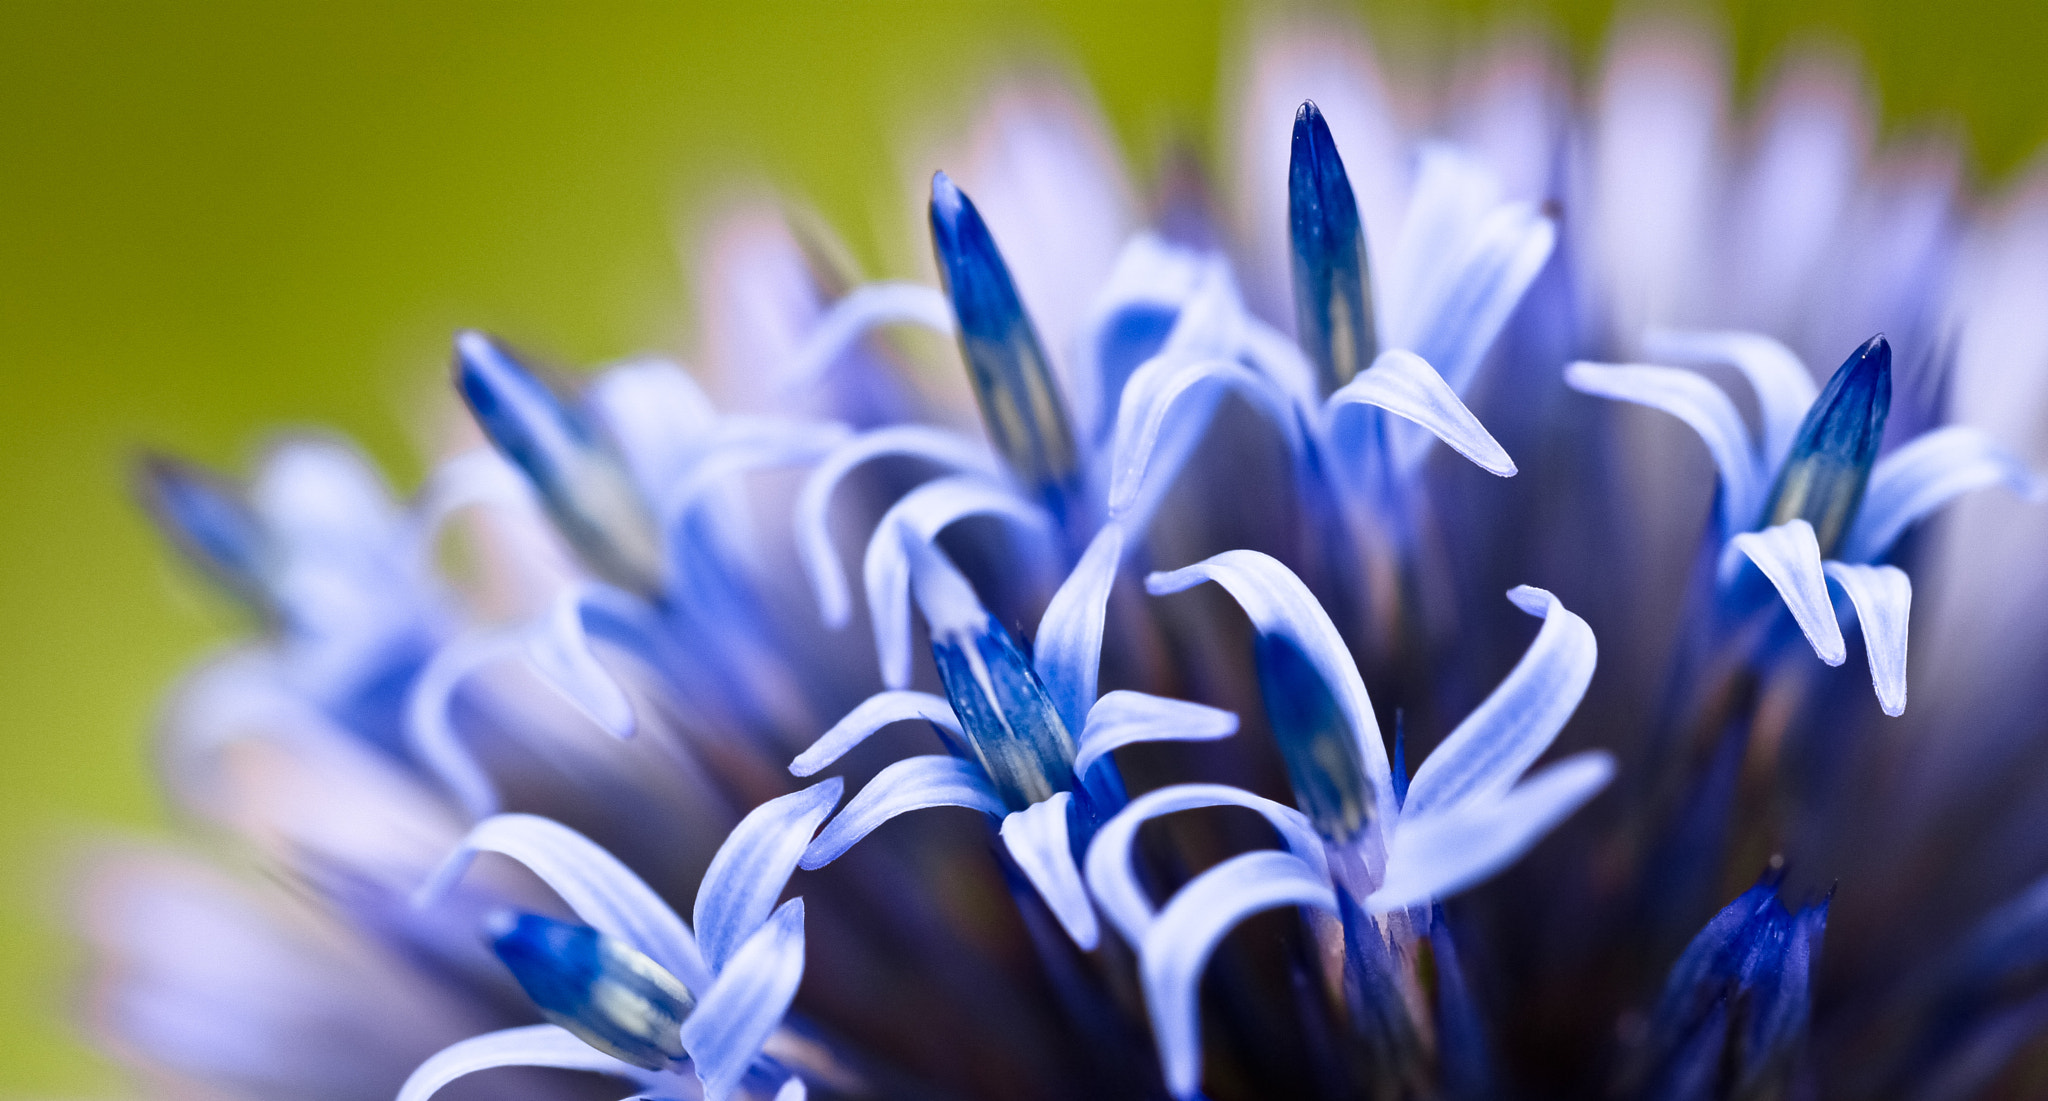 Photograph Blue flower by Christian Kraus on 500px